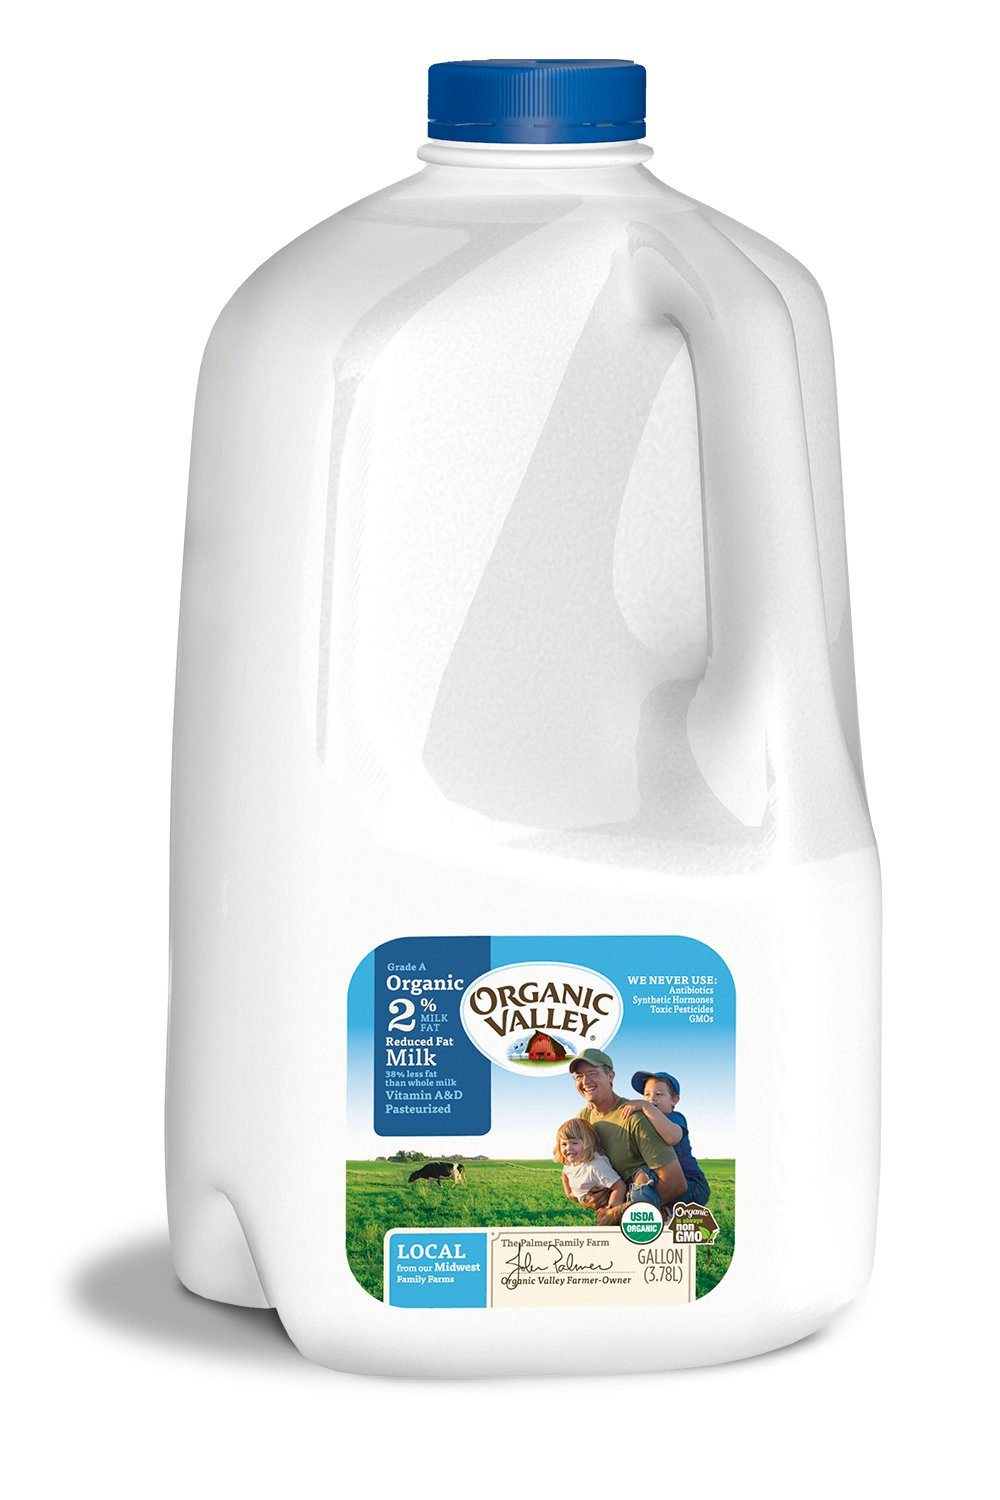 Organic Valley, Organic 2% Reduced Fat Milk, Pasteurized, Gallon, 128 Ounces